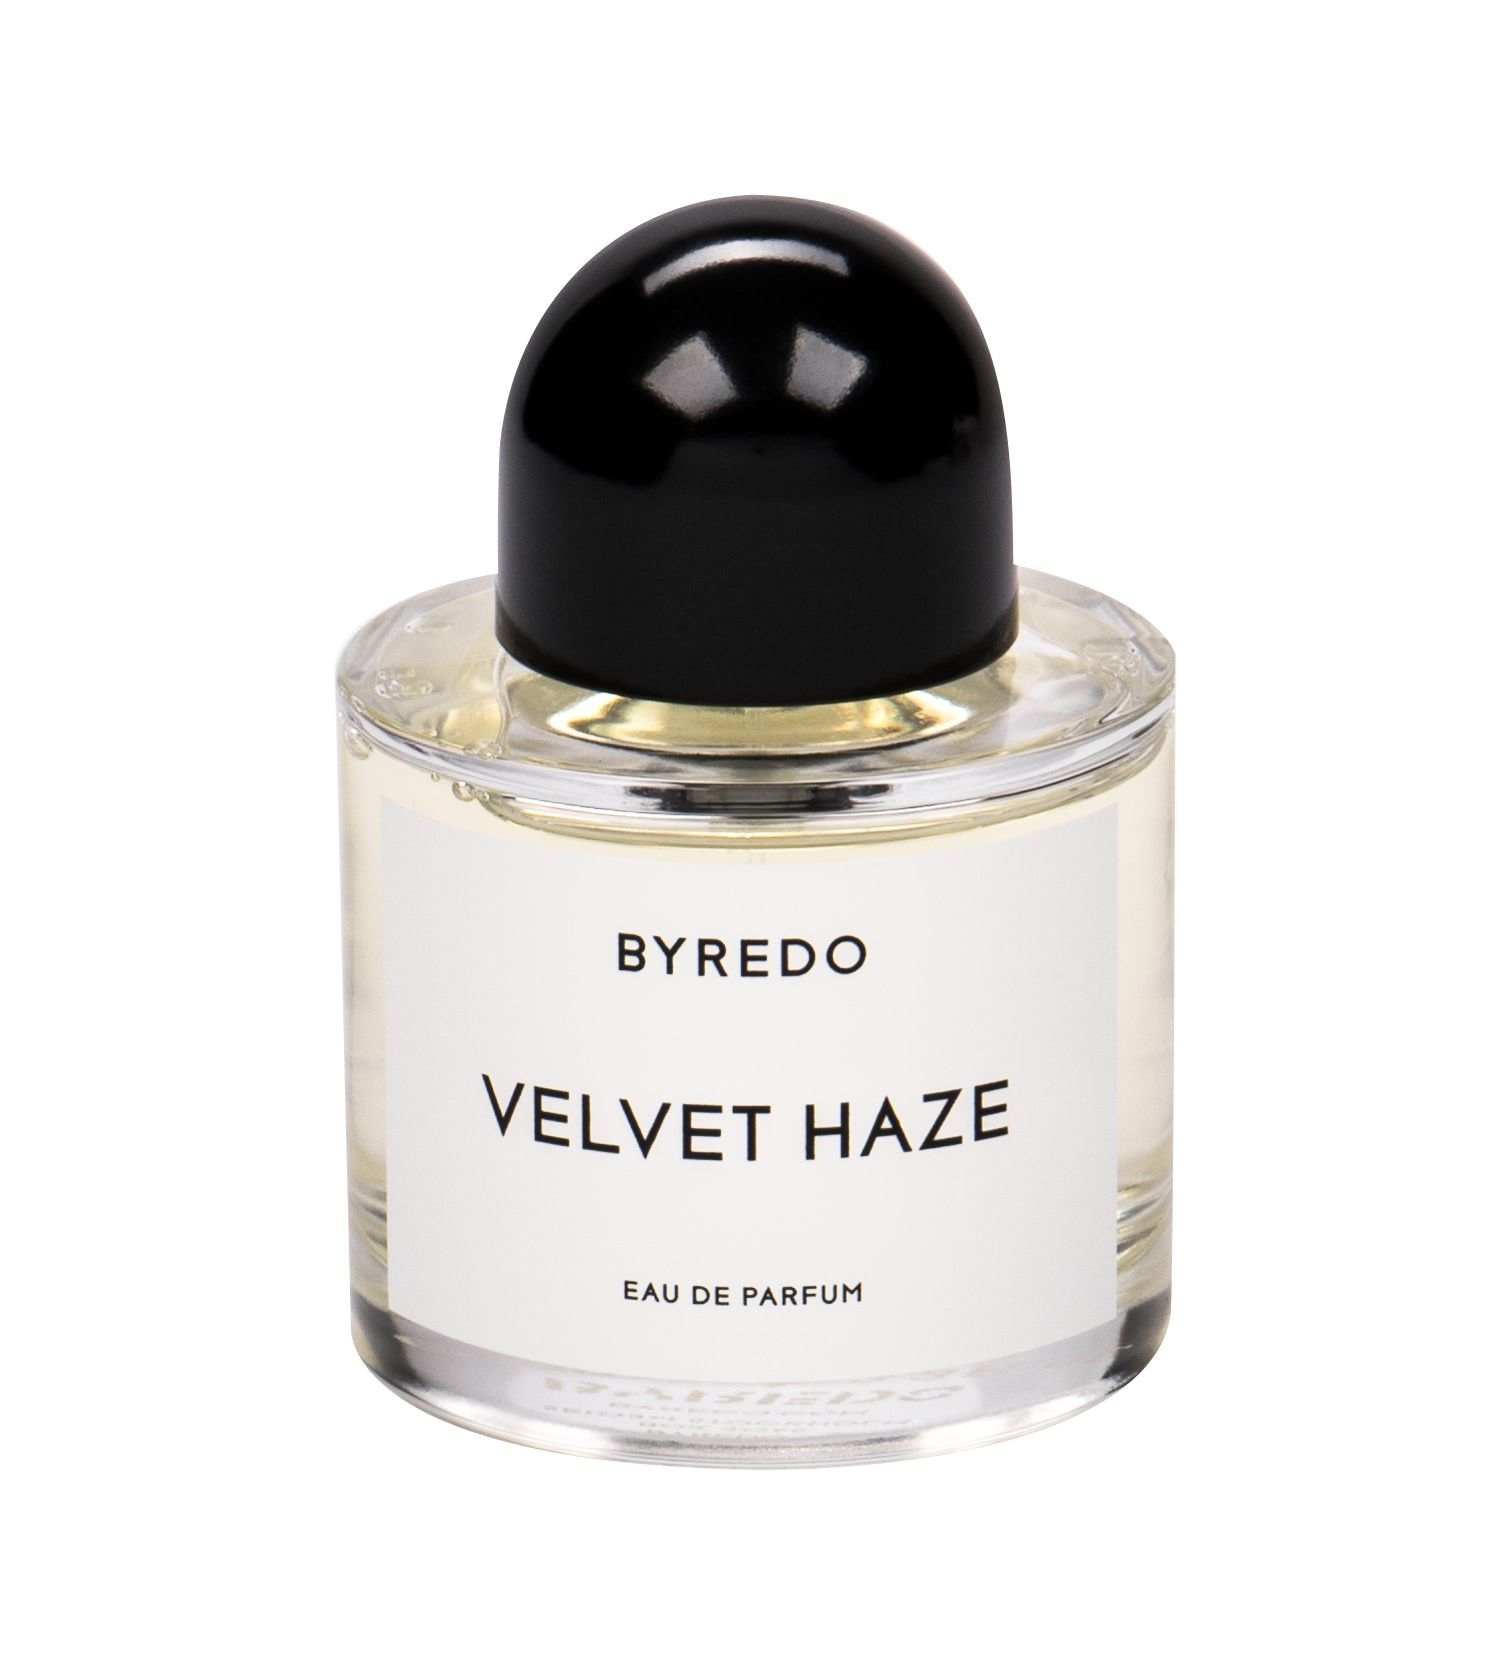 BYREDO Velvet Haze, edp 100ml